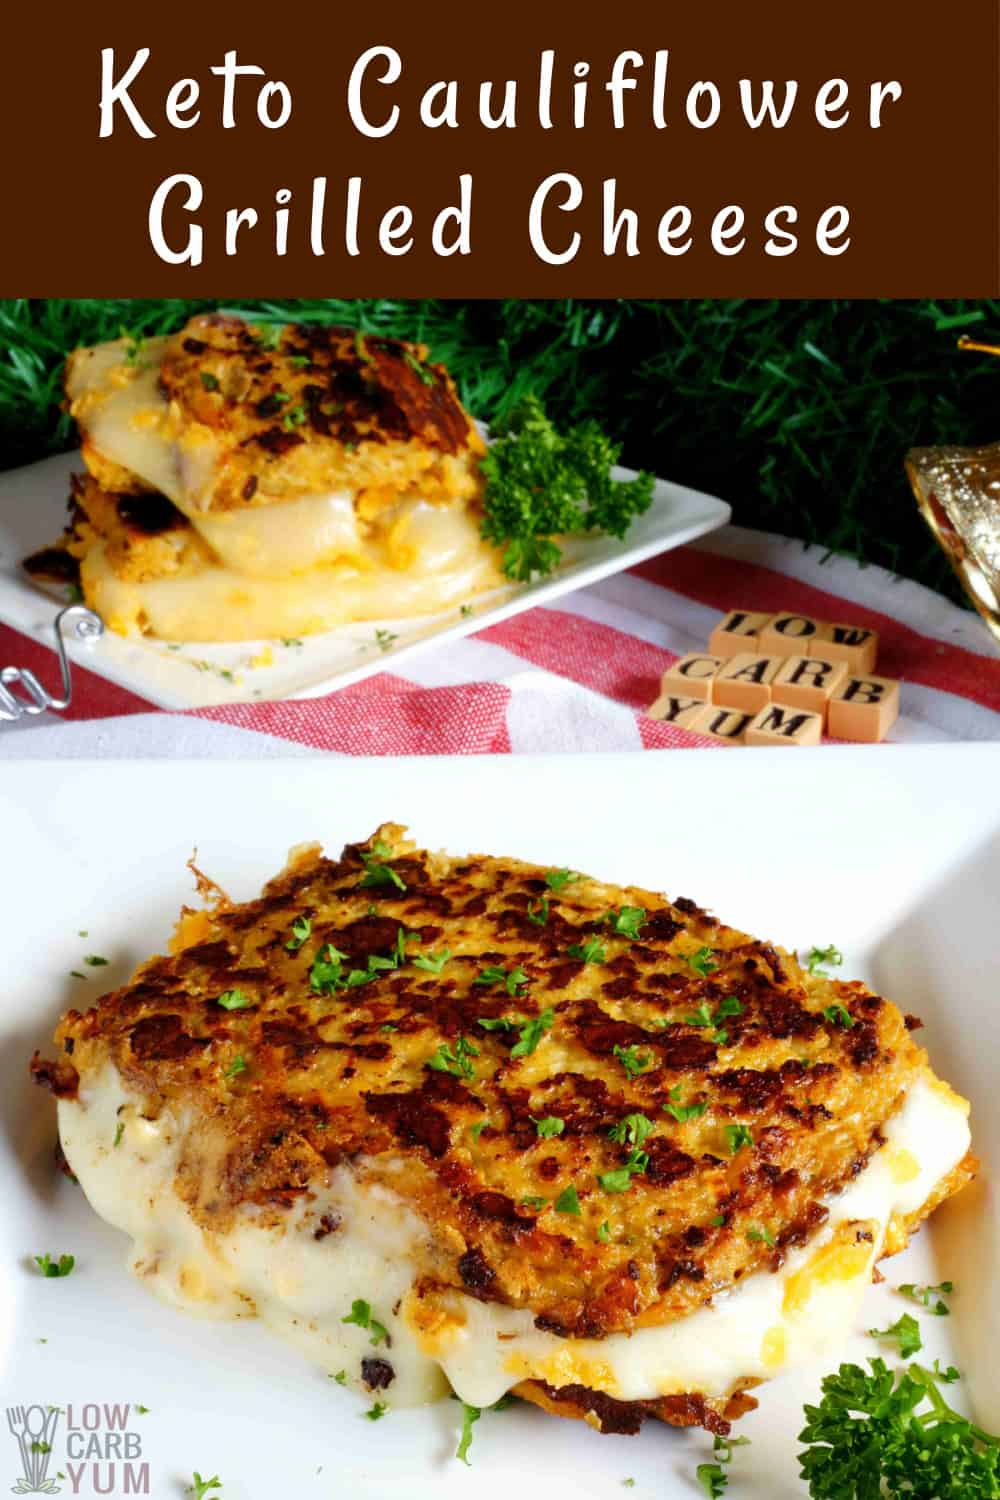 keto cauliflower grilled cheese cover image